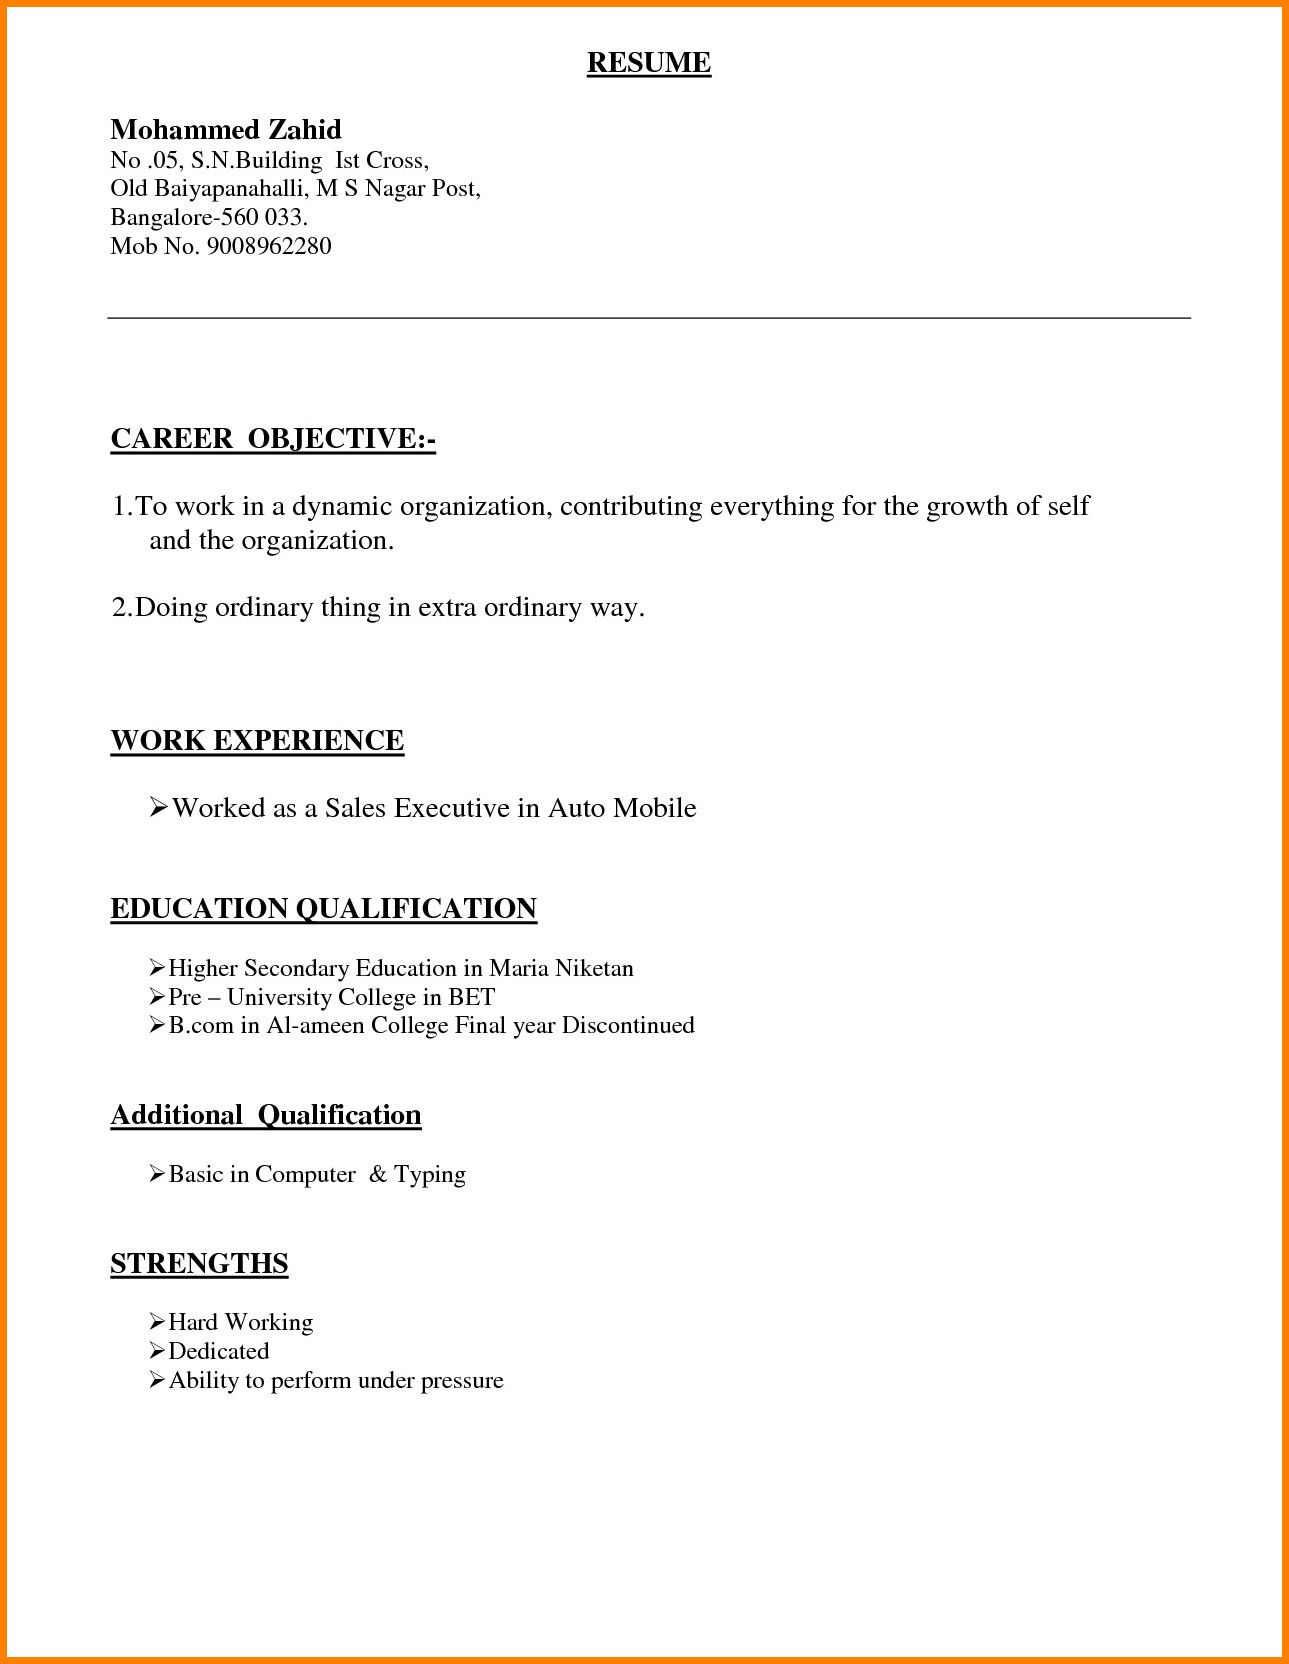 Different Types Of Resumes Great 6 Different Types Of Resume Format Of 26 Exclusive Different Types Of Resumes Resume Resume Format For Freshers